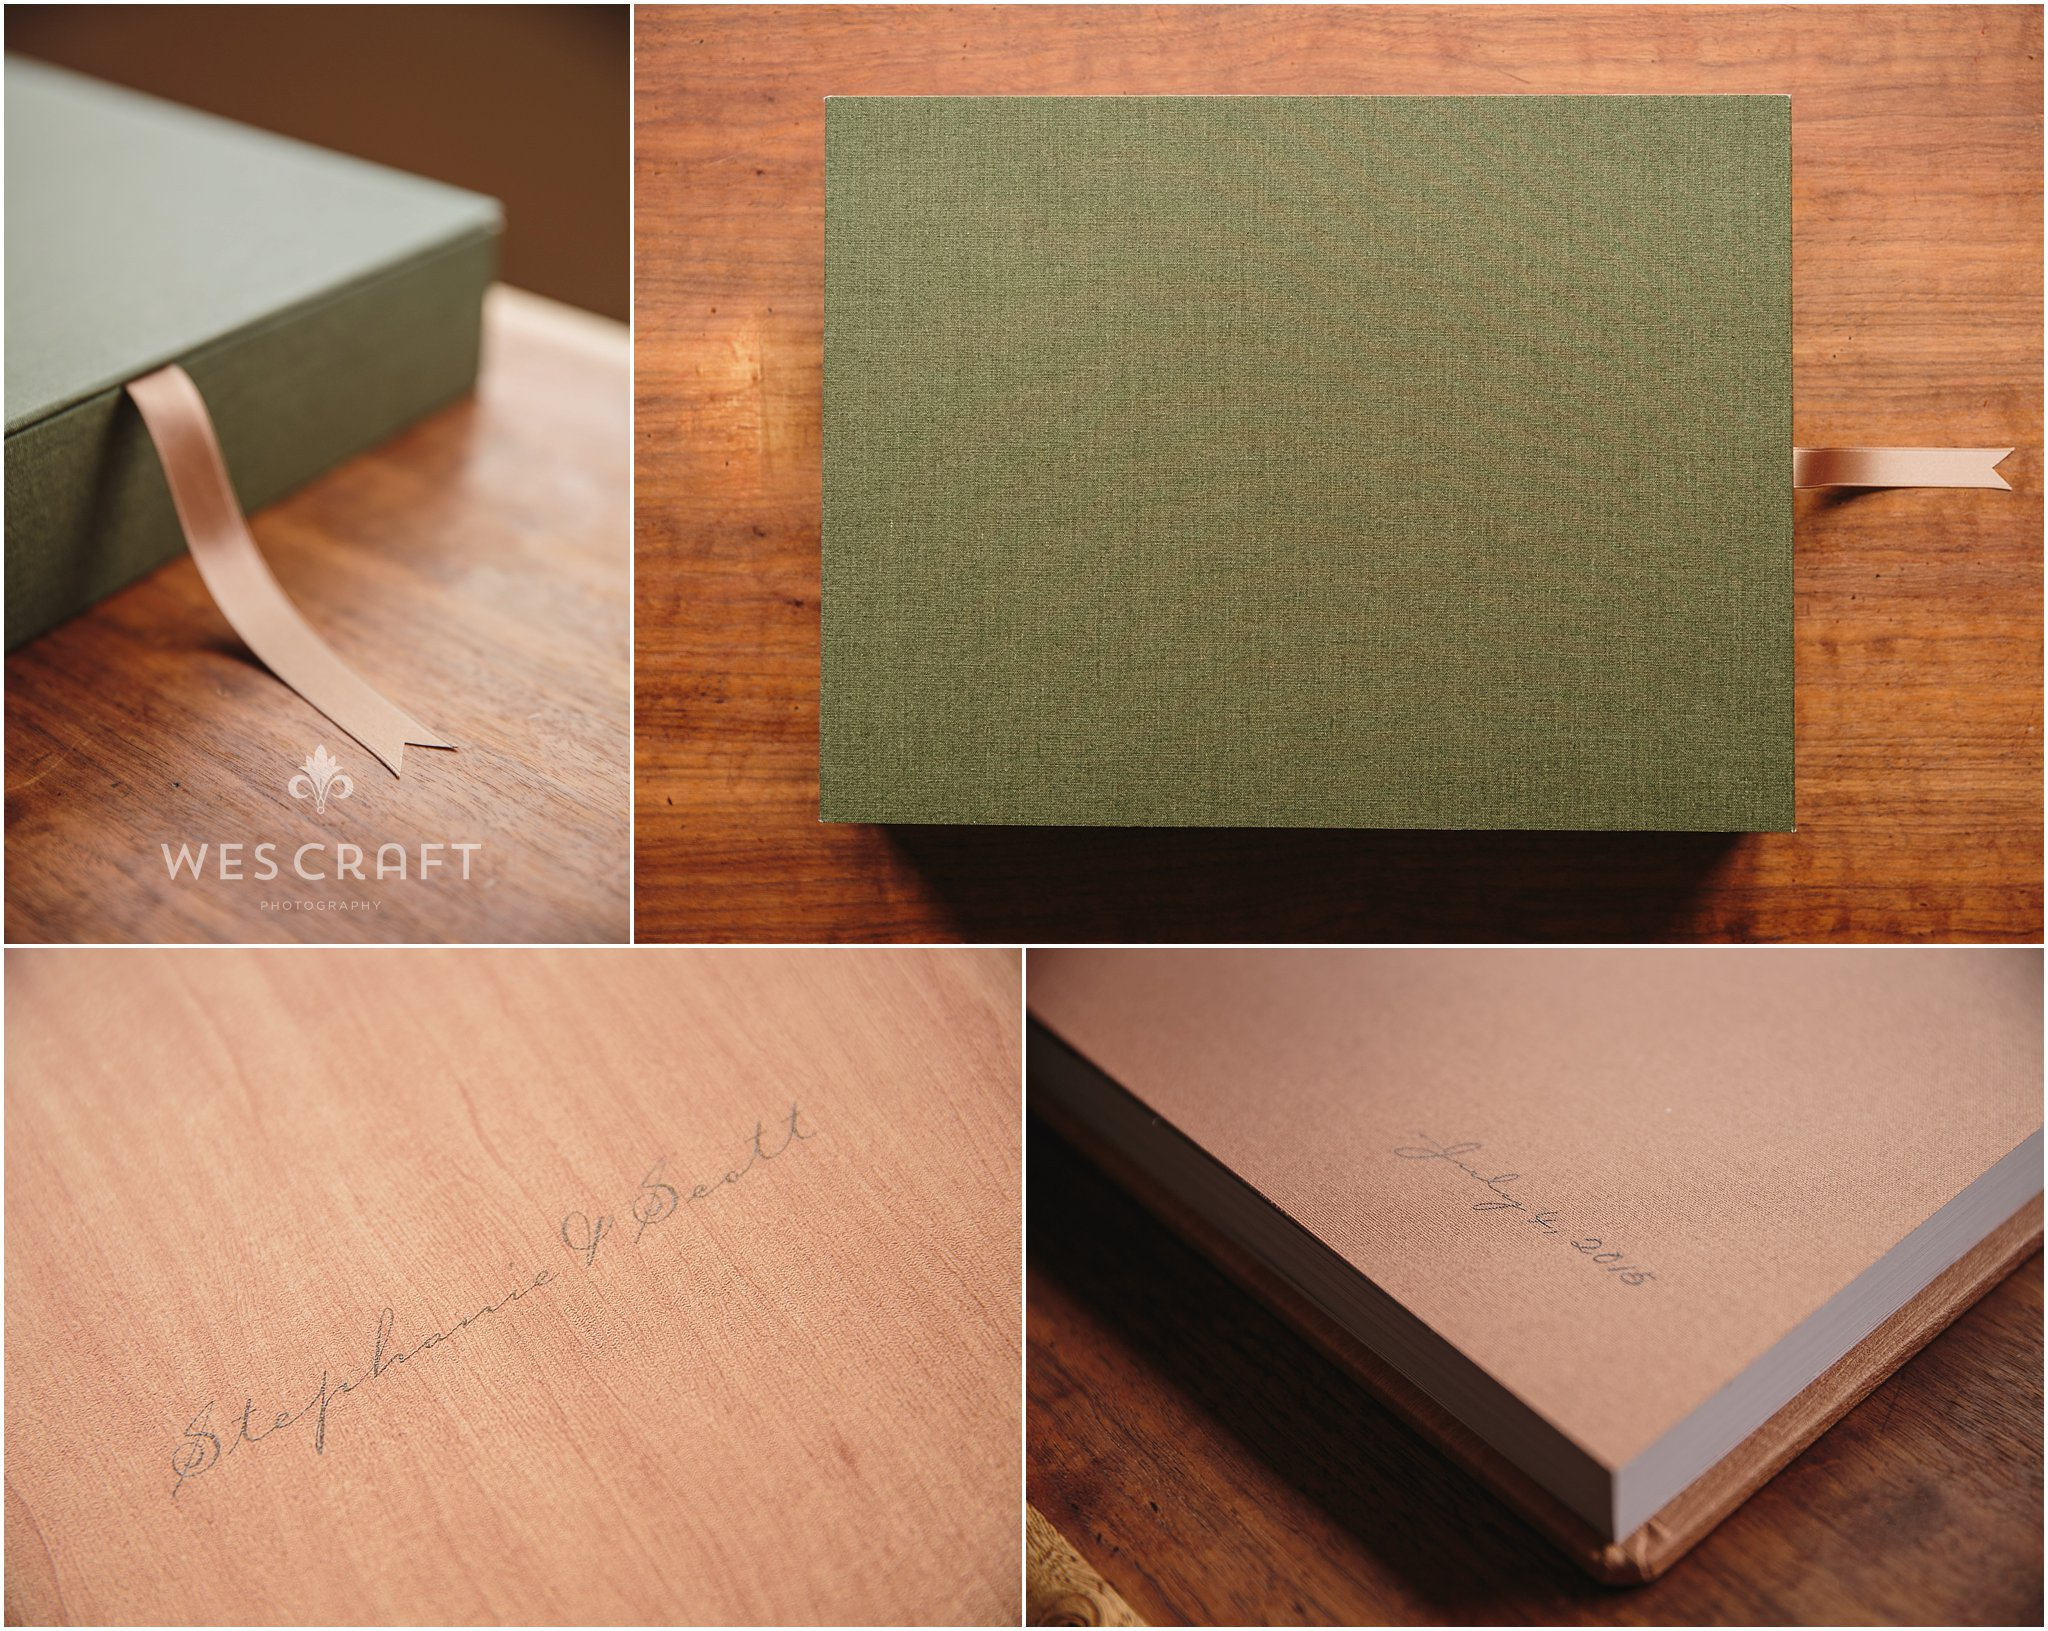 A hand chosen ribbon lifts your album out of it's custom made linen box. We chose moss green for this wooded themed wedding. The cover titles are overprinted in a Carpenter script on the Maple cover.